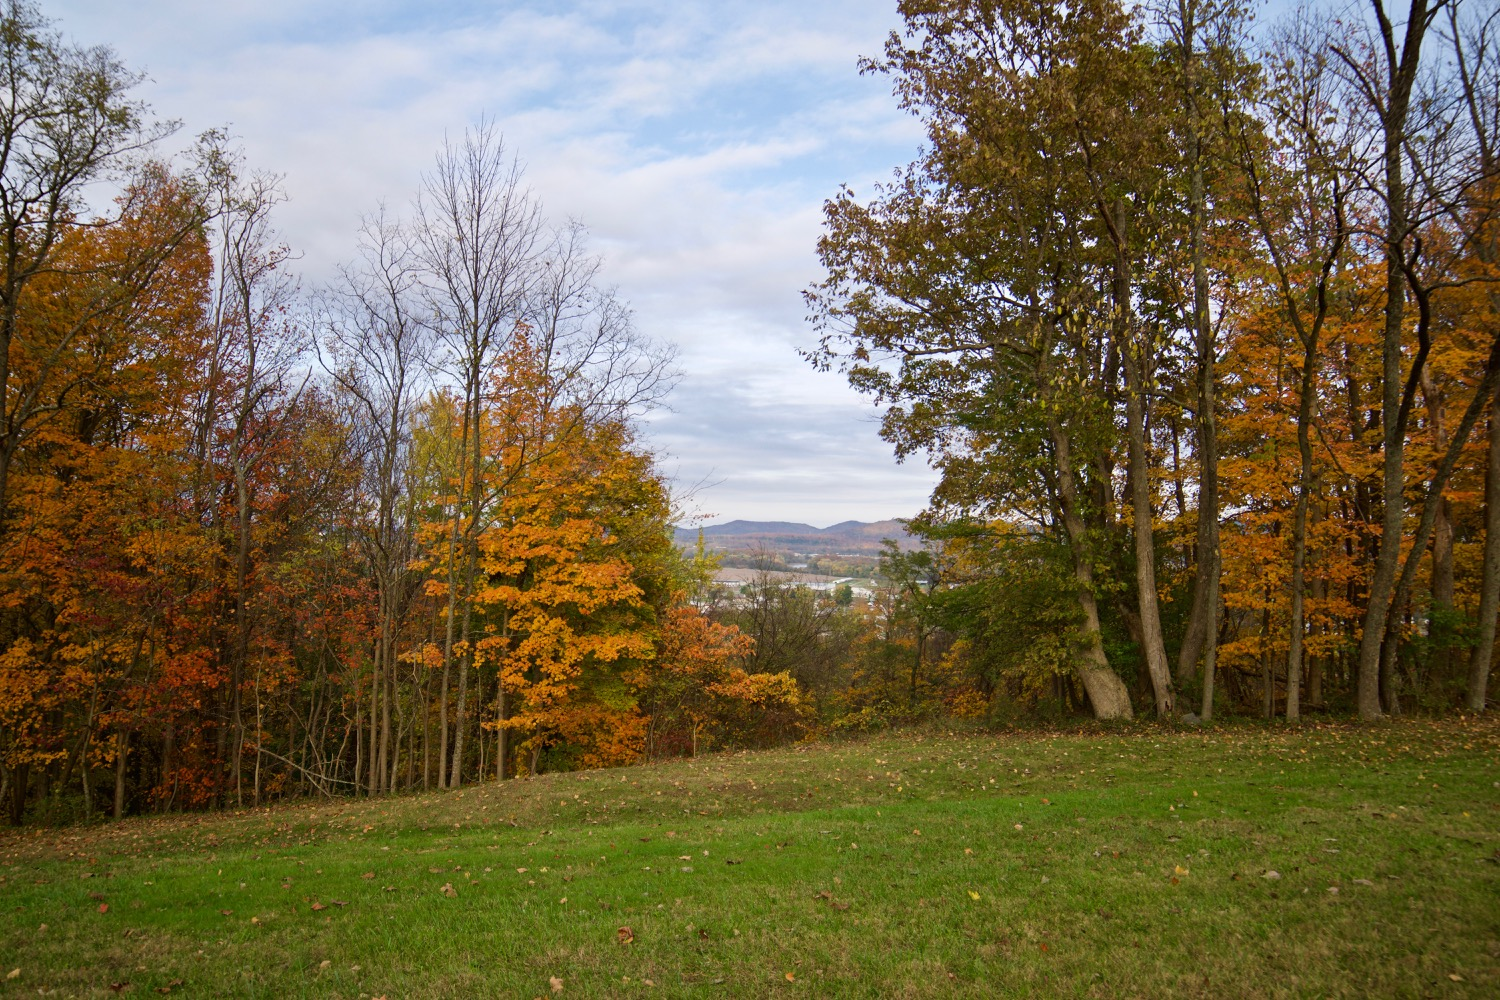 From its charming small towns to its delicious Chillicothe restaurants, Ross County offers everything an intrepid leaf-peeper could want in a fall day trip. The Native American earthworks are a humbling sight too. / Image: Brian Planalp